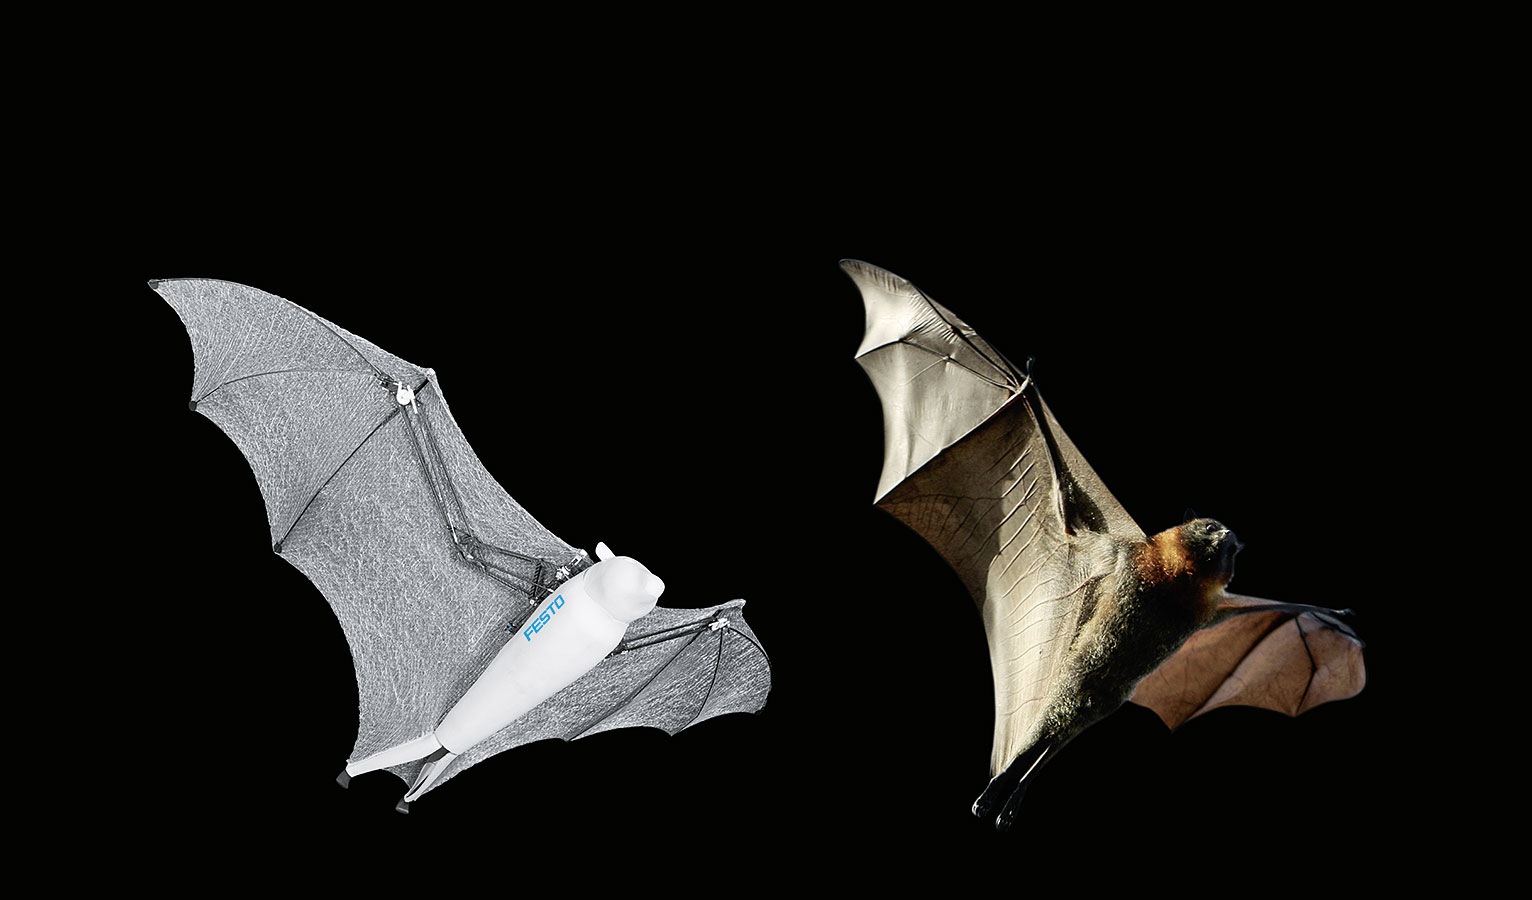 BionicFlyingFox compared to real flying fox. Source: Festo